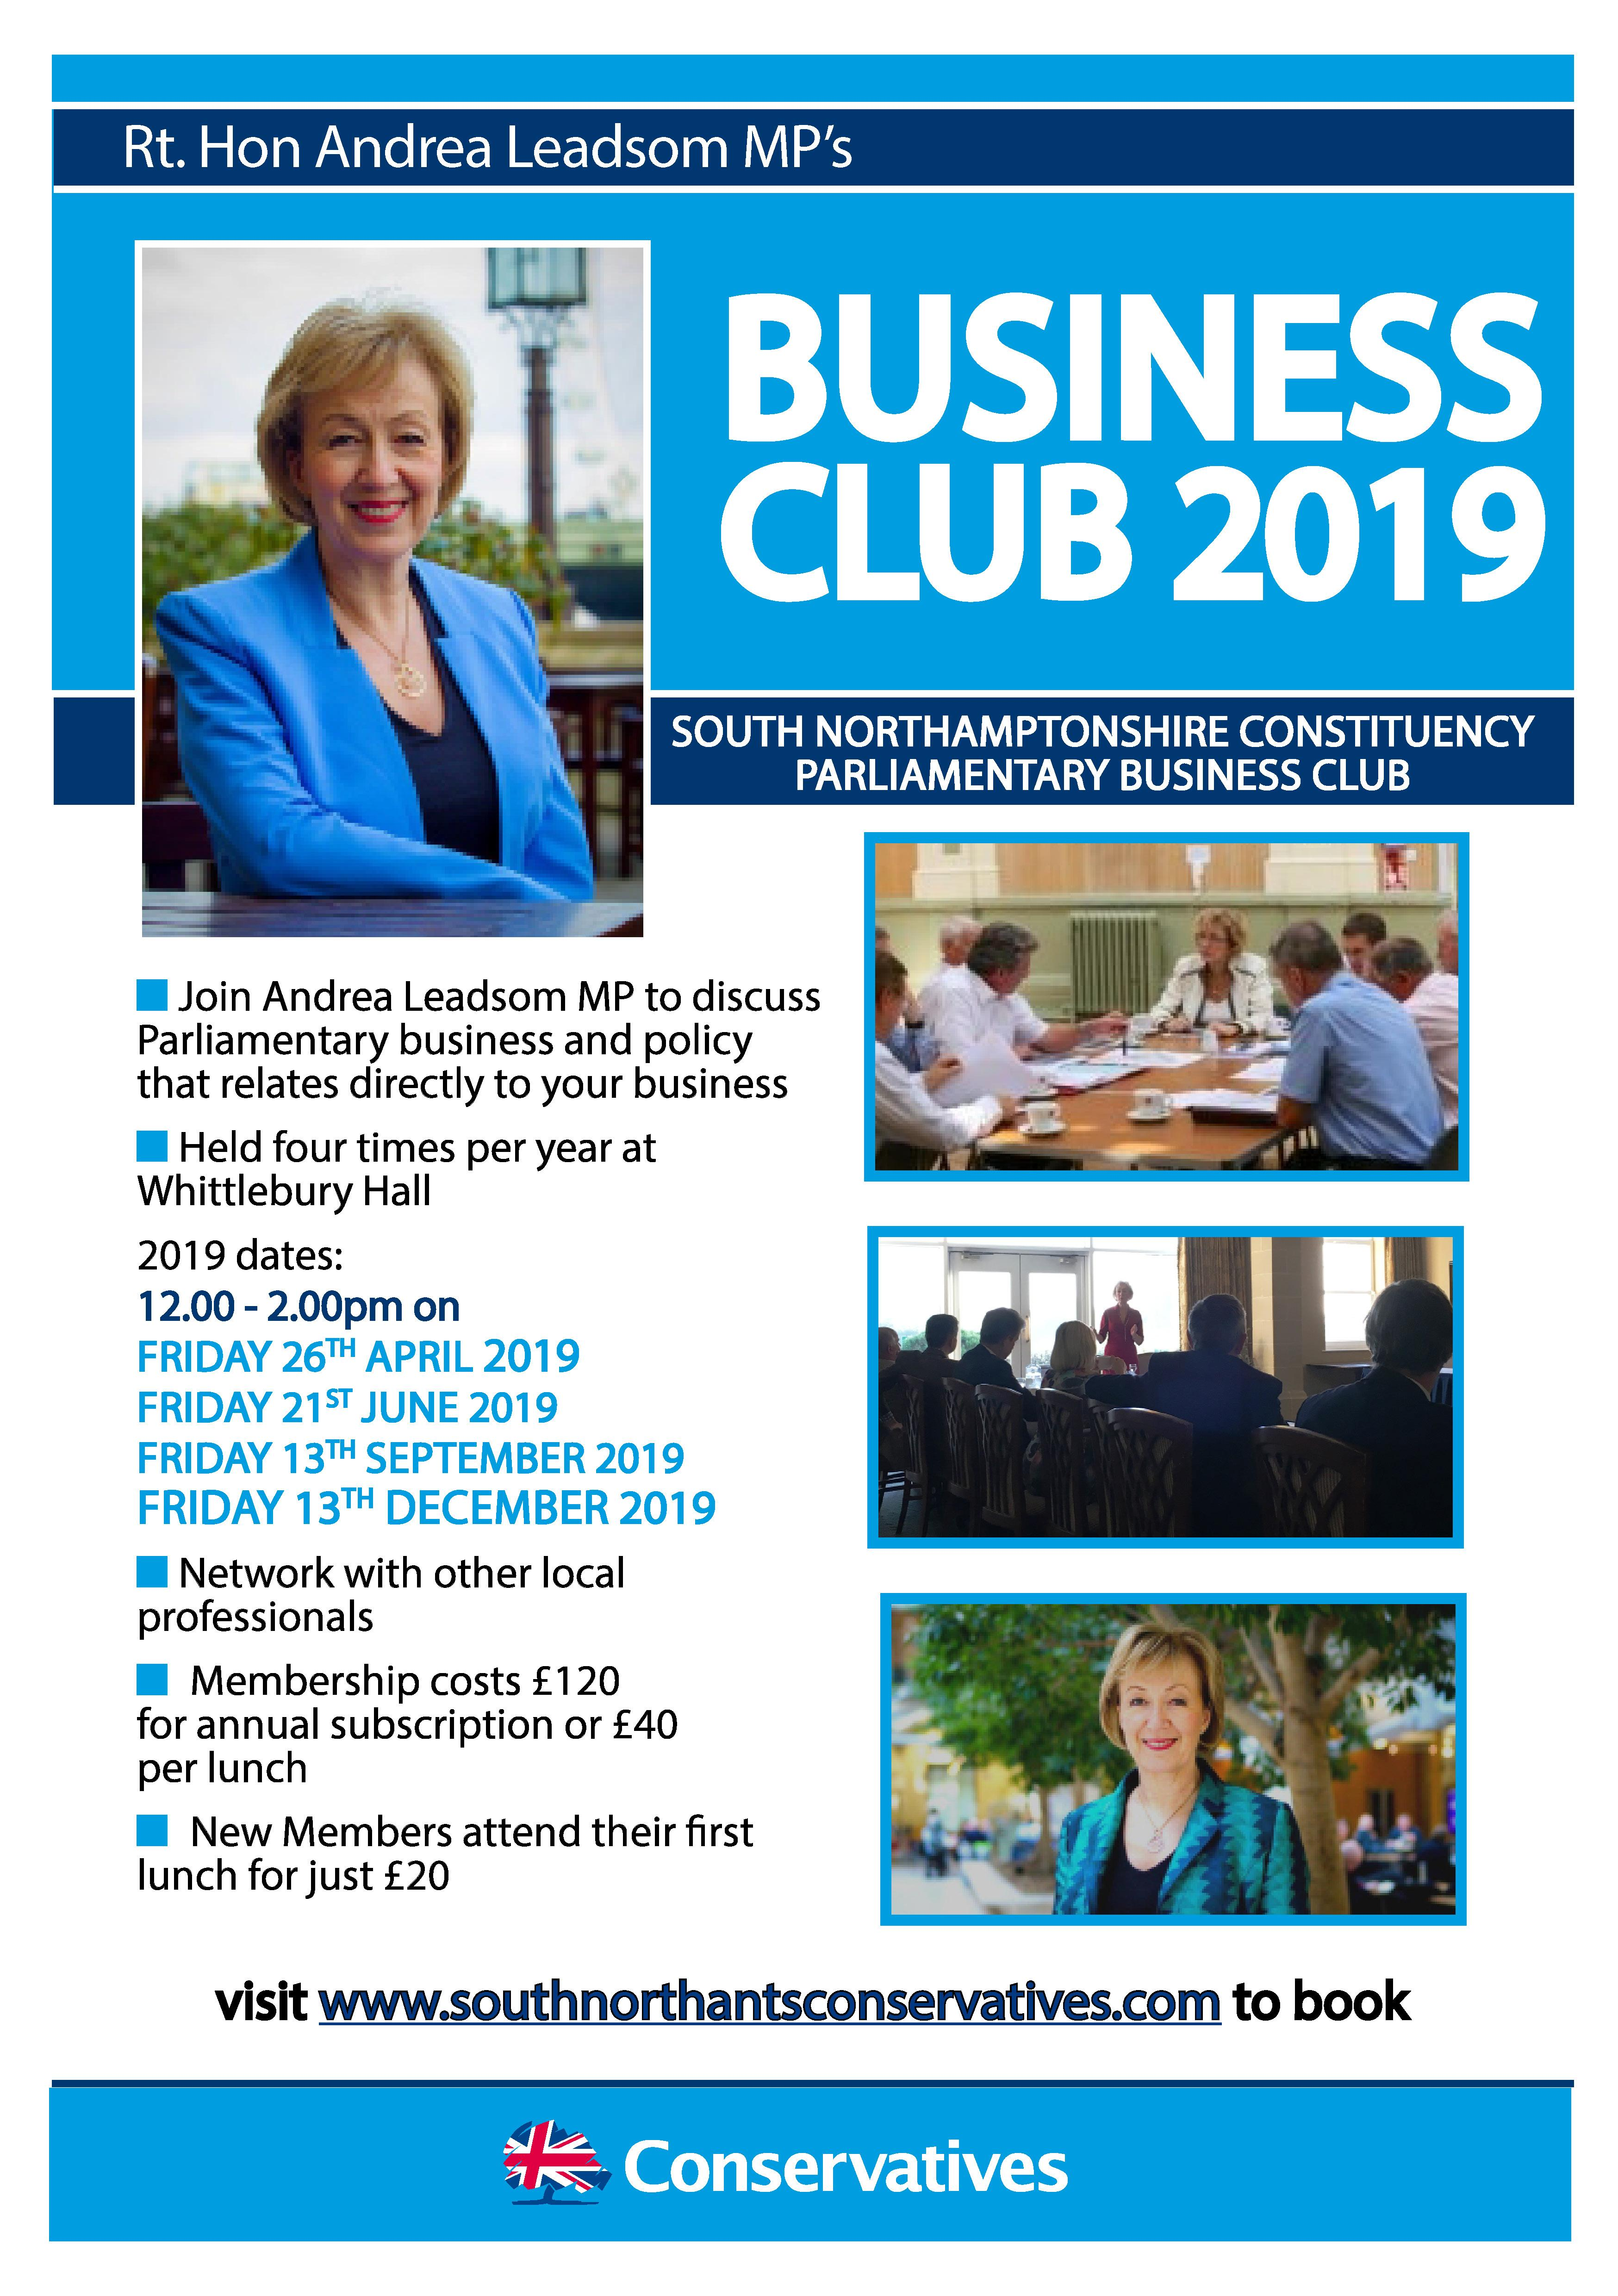 Andrea Leadsom Business Club 2019